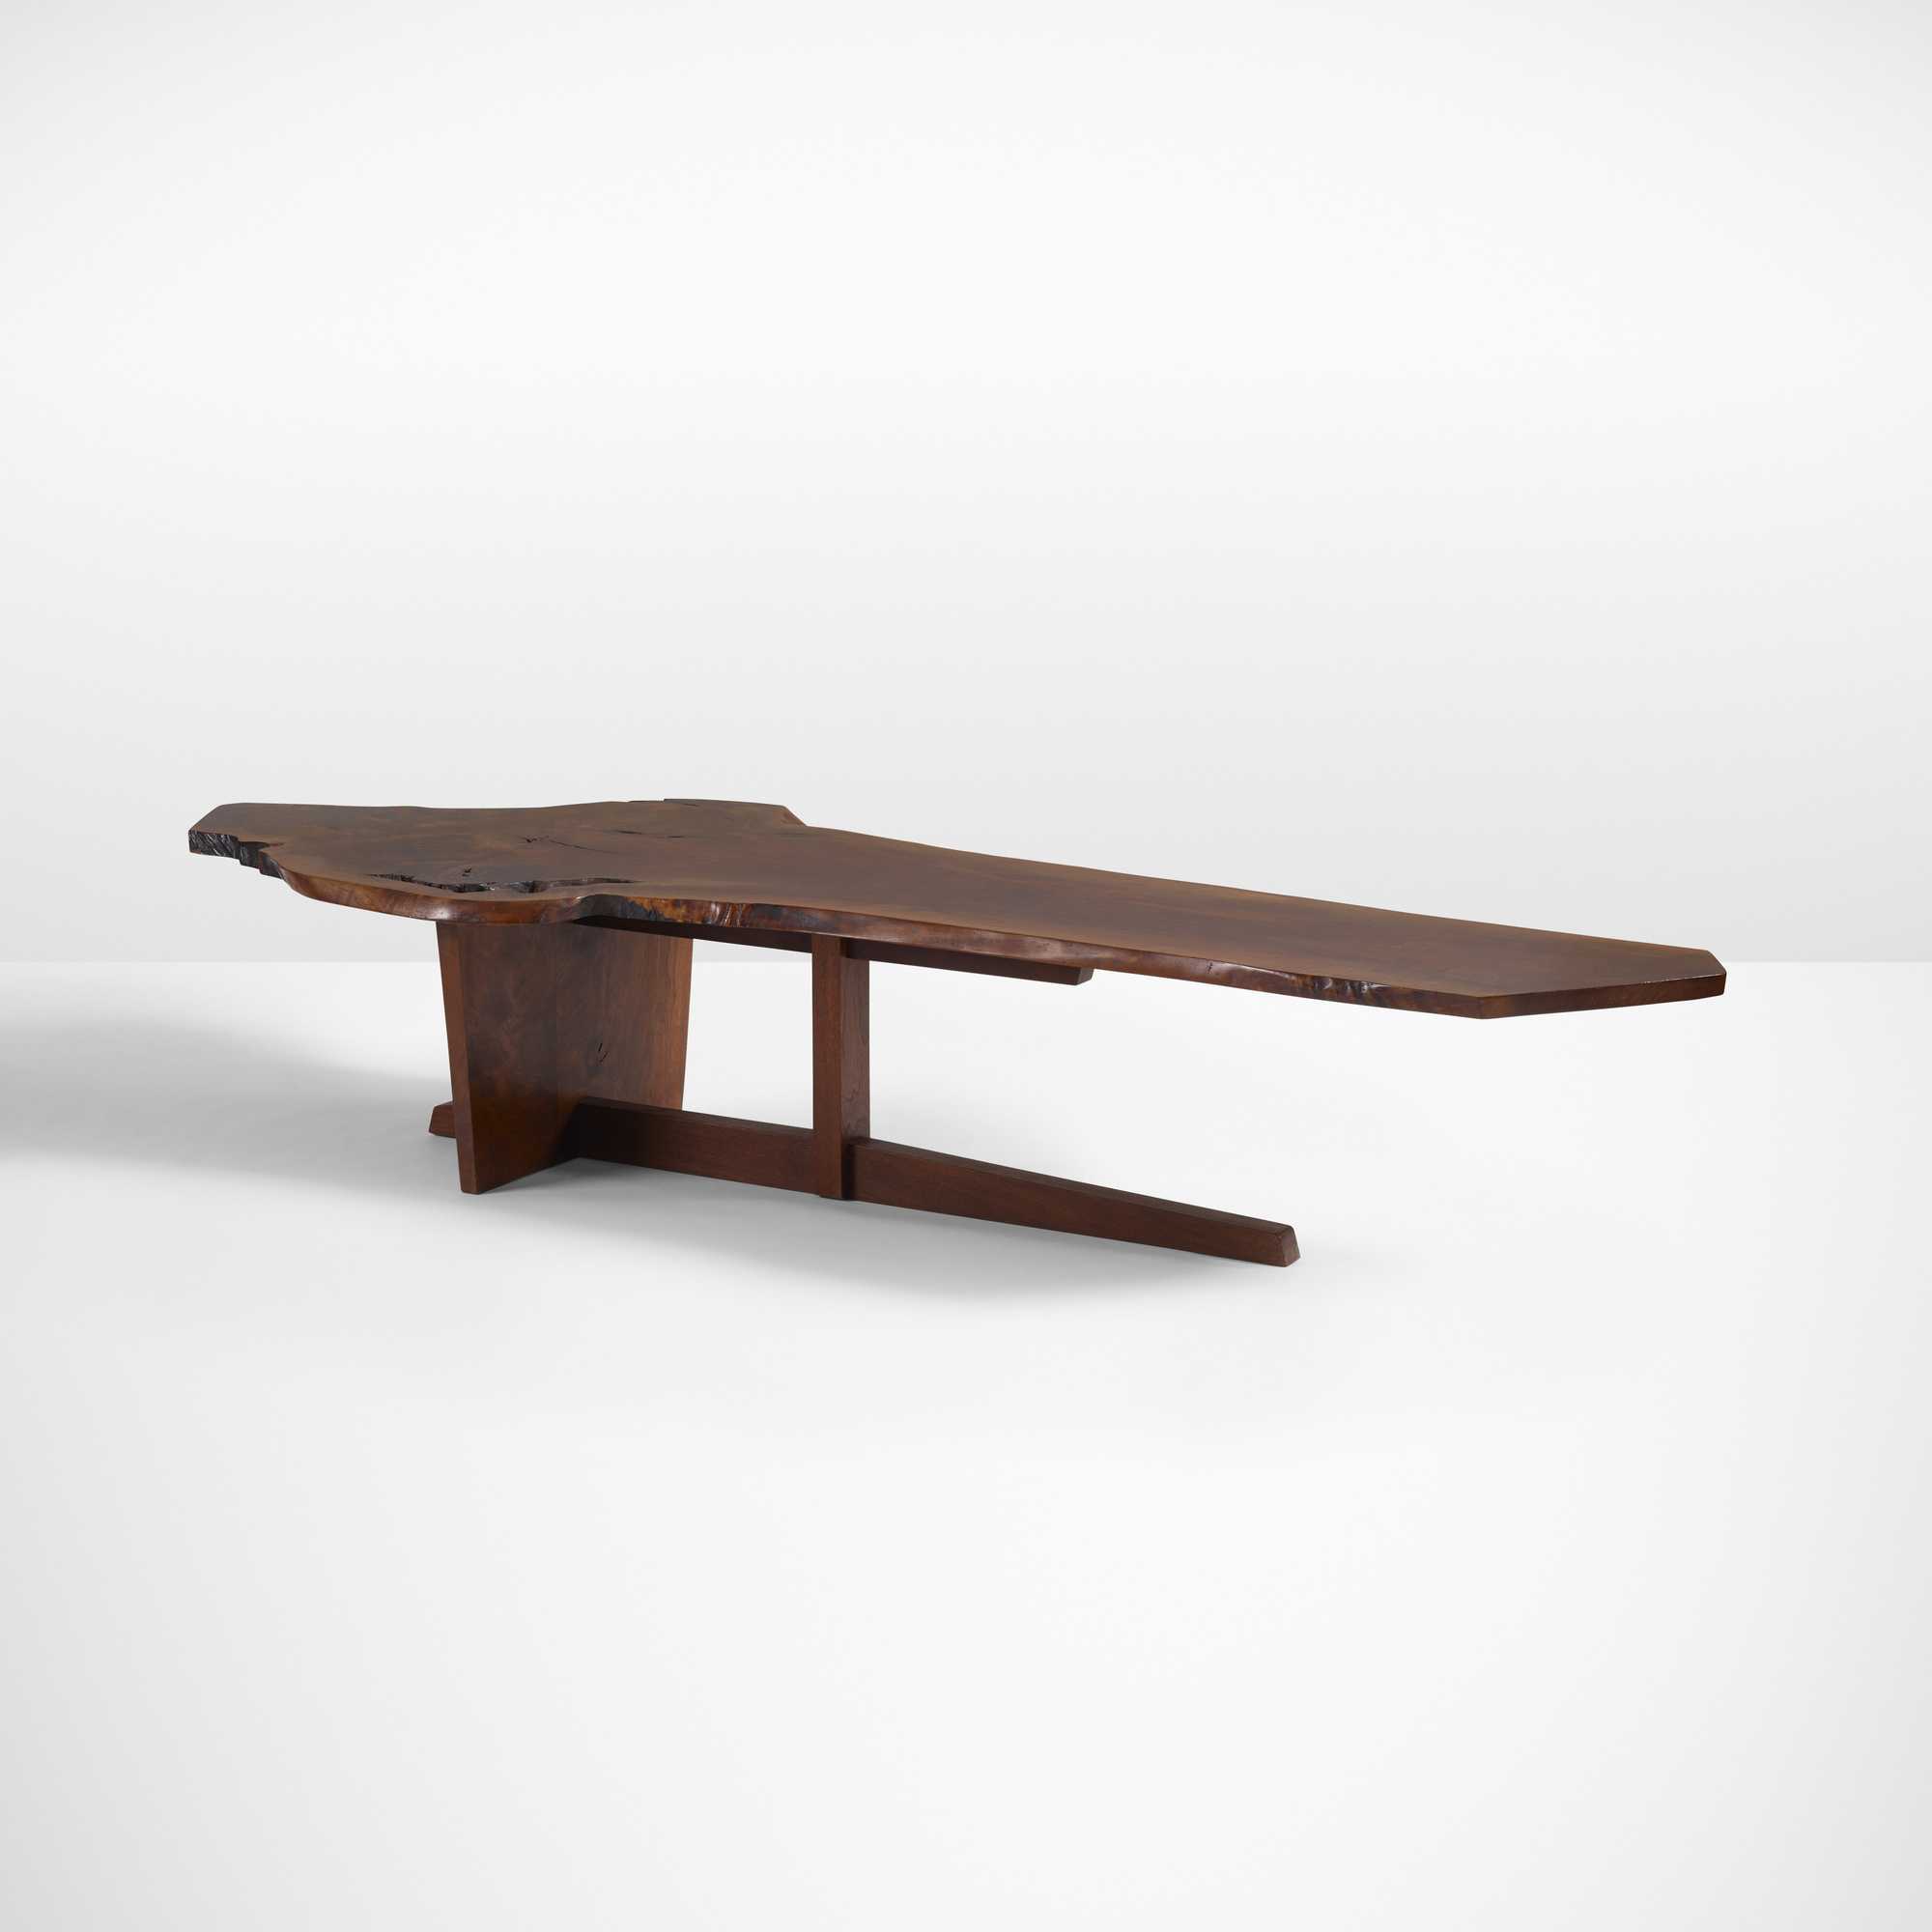 26: George Nakashima / Important Minguren II coffee table (1 of 4)